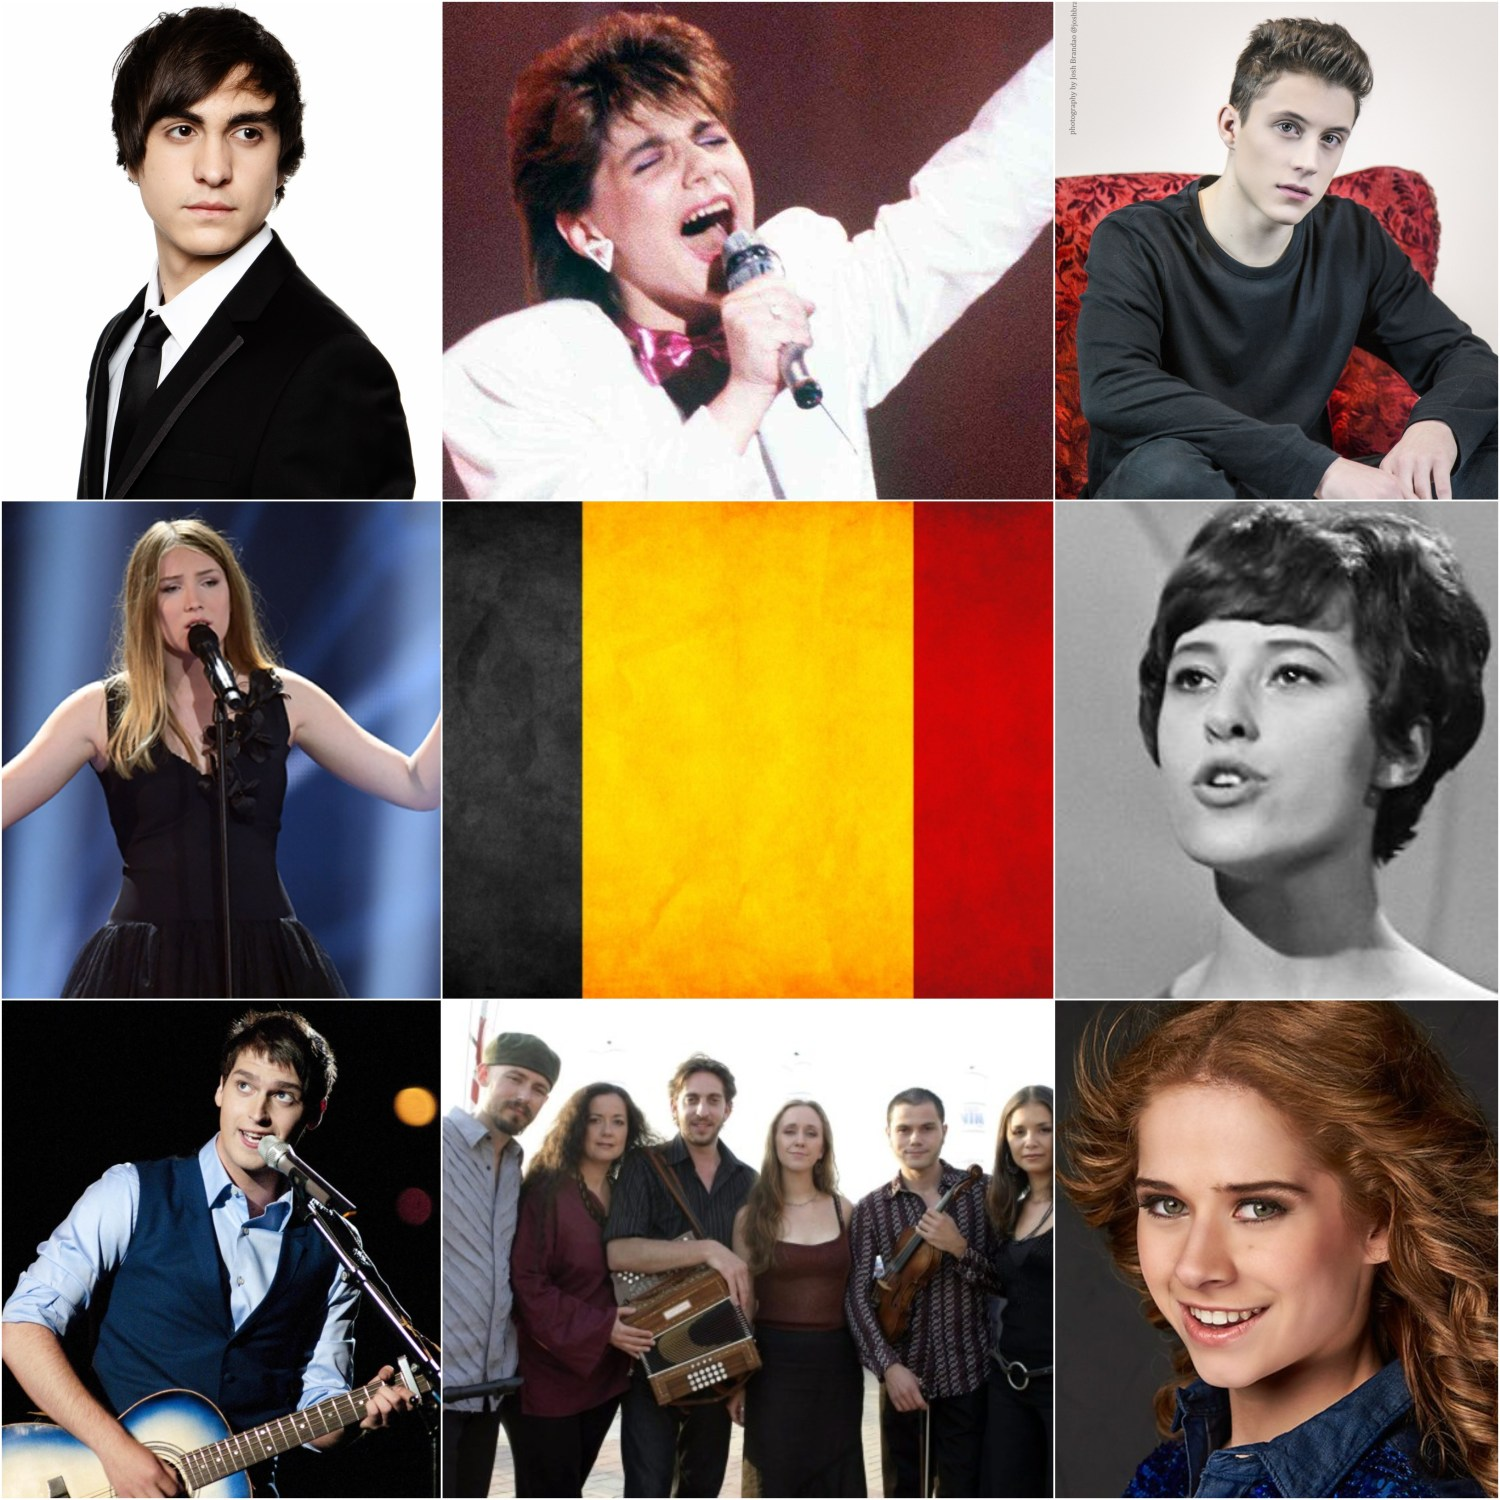 Top Eurovision entries from Belgium